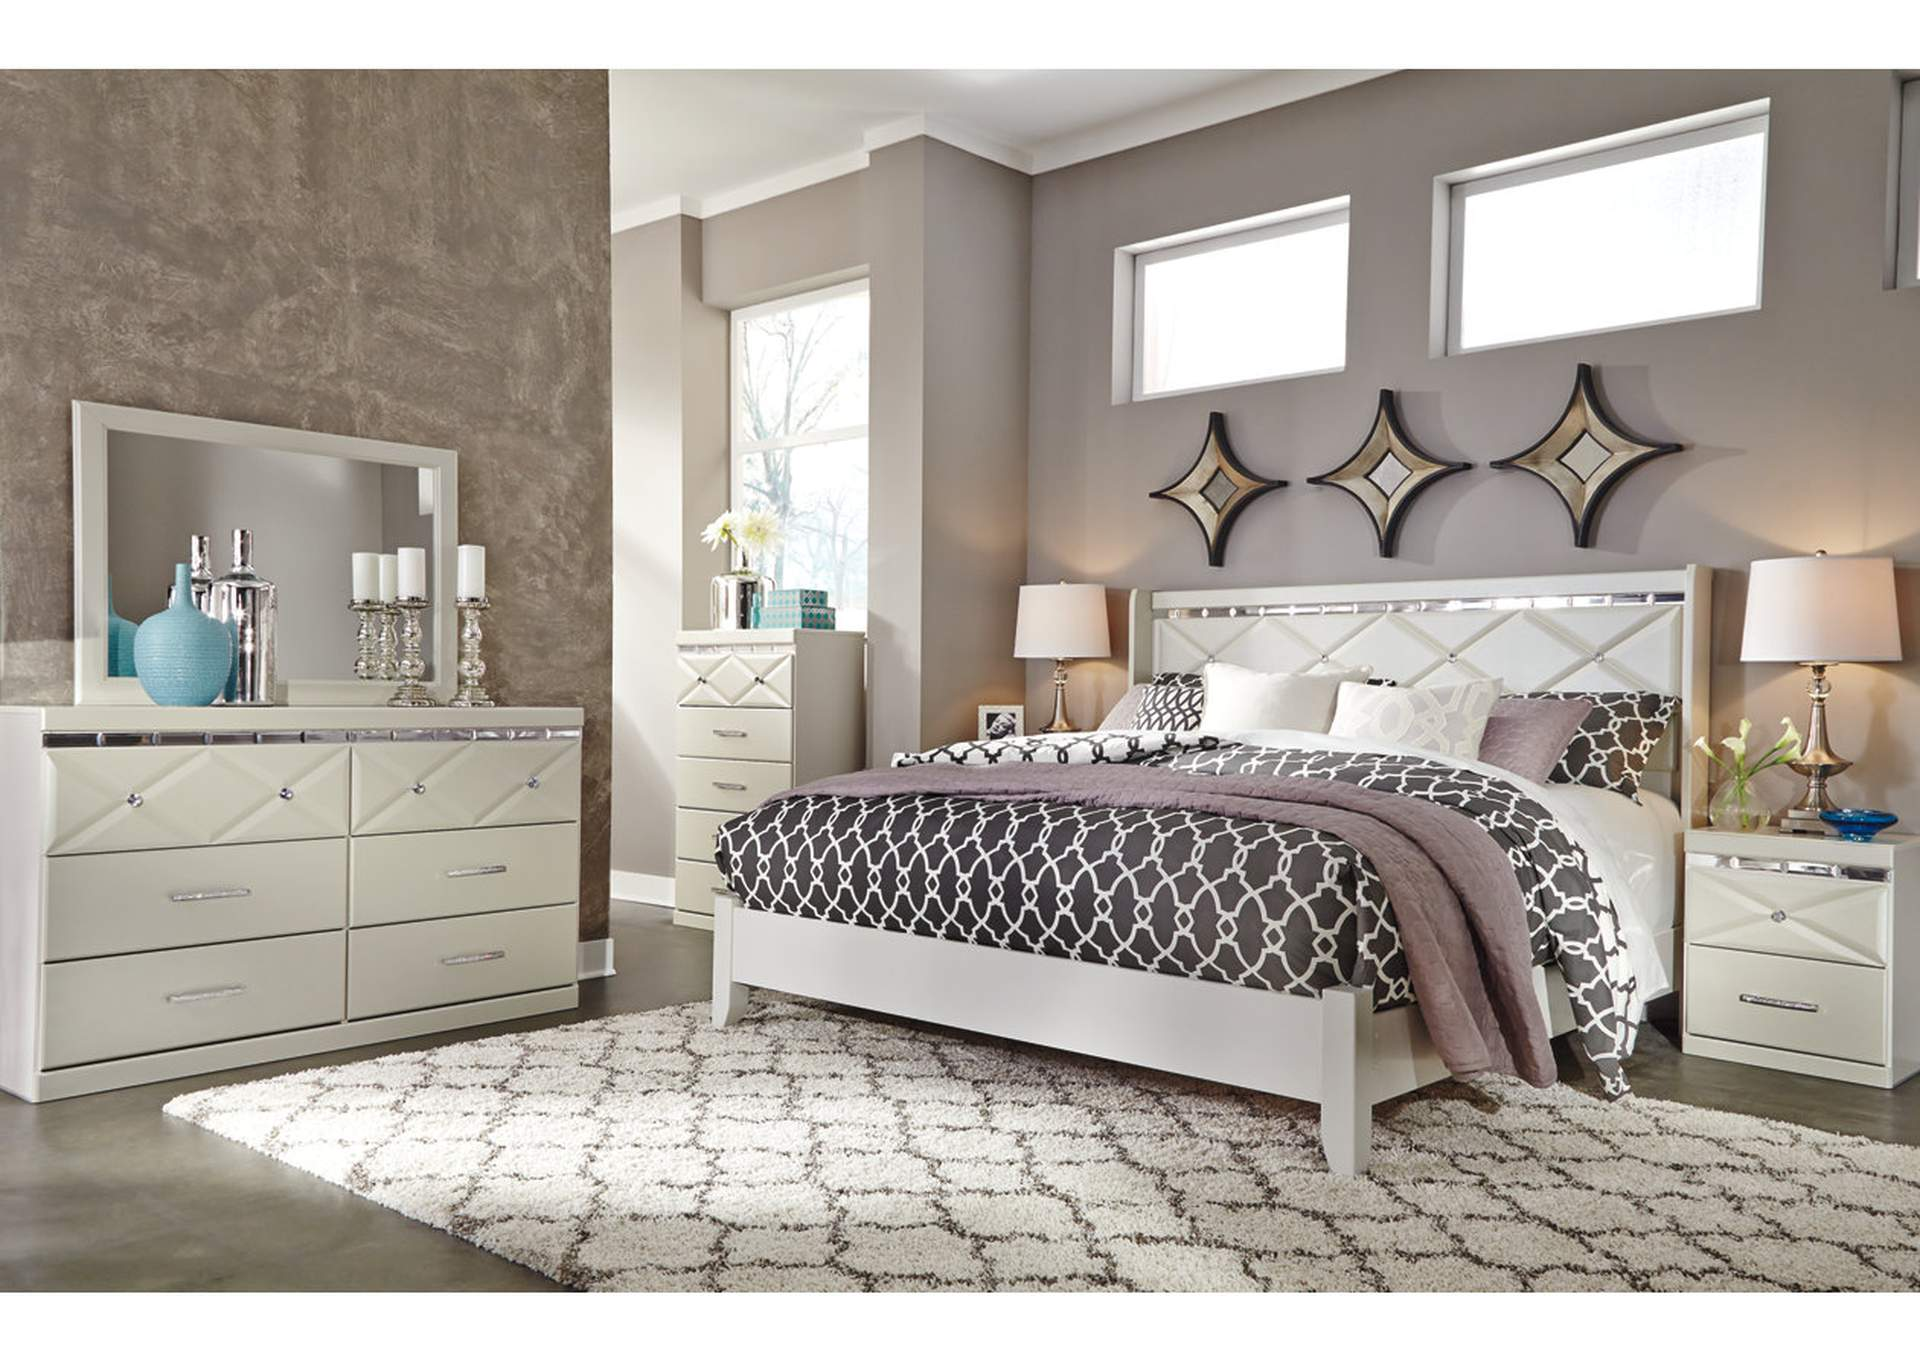 Dreamur Champagne King Panel Bed w/Dresser, Mirror, Drawer Chest & Nightstand,Signature Design By Ashley